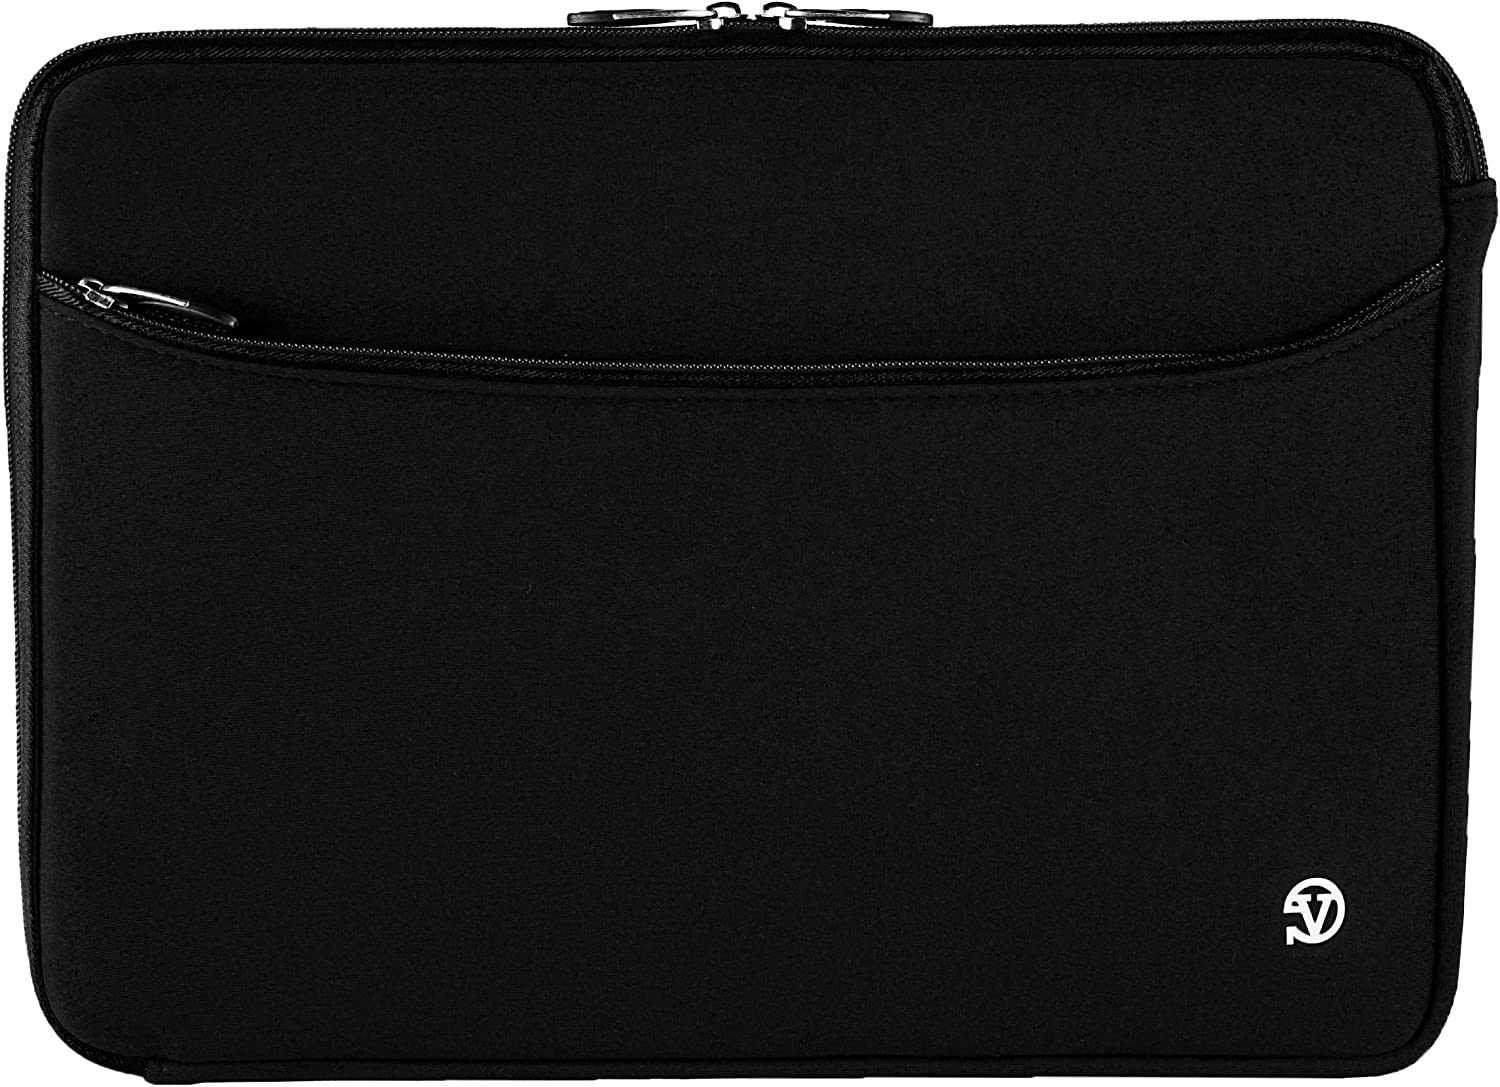 Jet Black Protective 17 inch Laptop Sleeve Carrying Bag Fit for Acer Aspire 5, 7, E, E1, ES, V Nitro, Black Edition, TravelMate P2 17.3inch